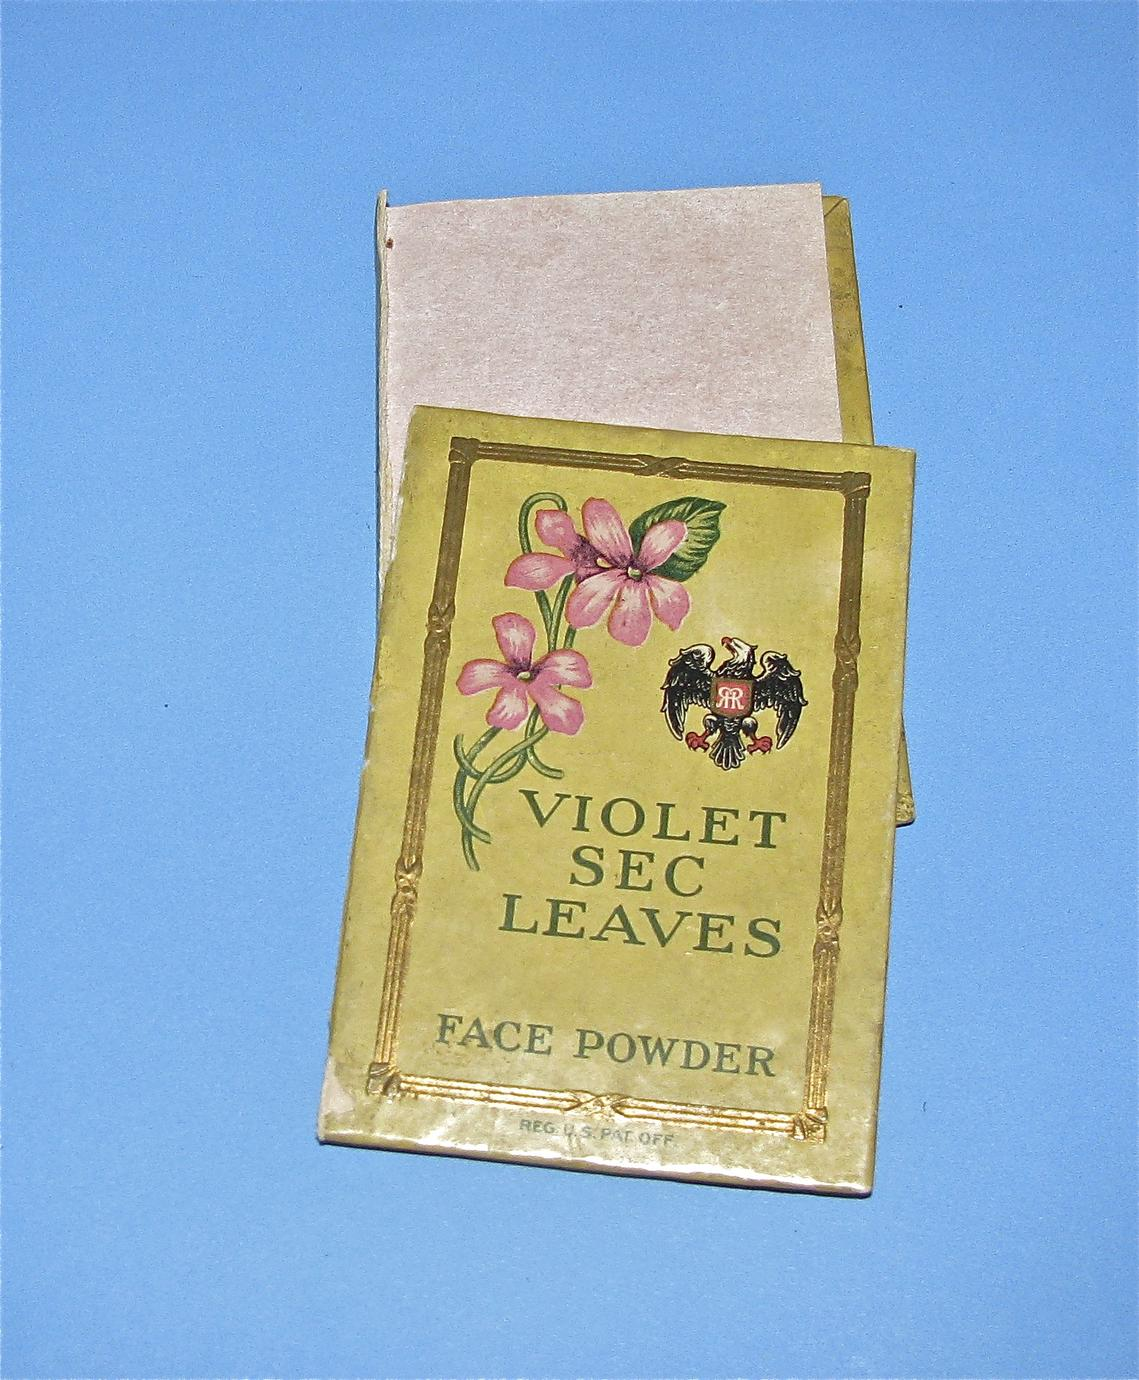 Richard Hudnut book of Violet Sec Leaves face powder